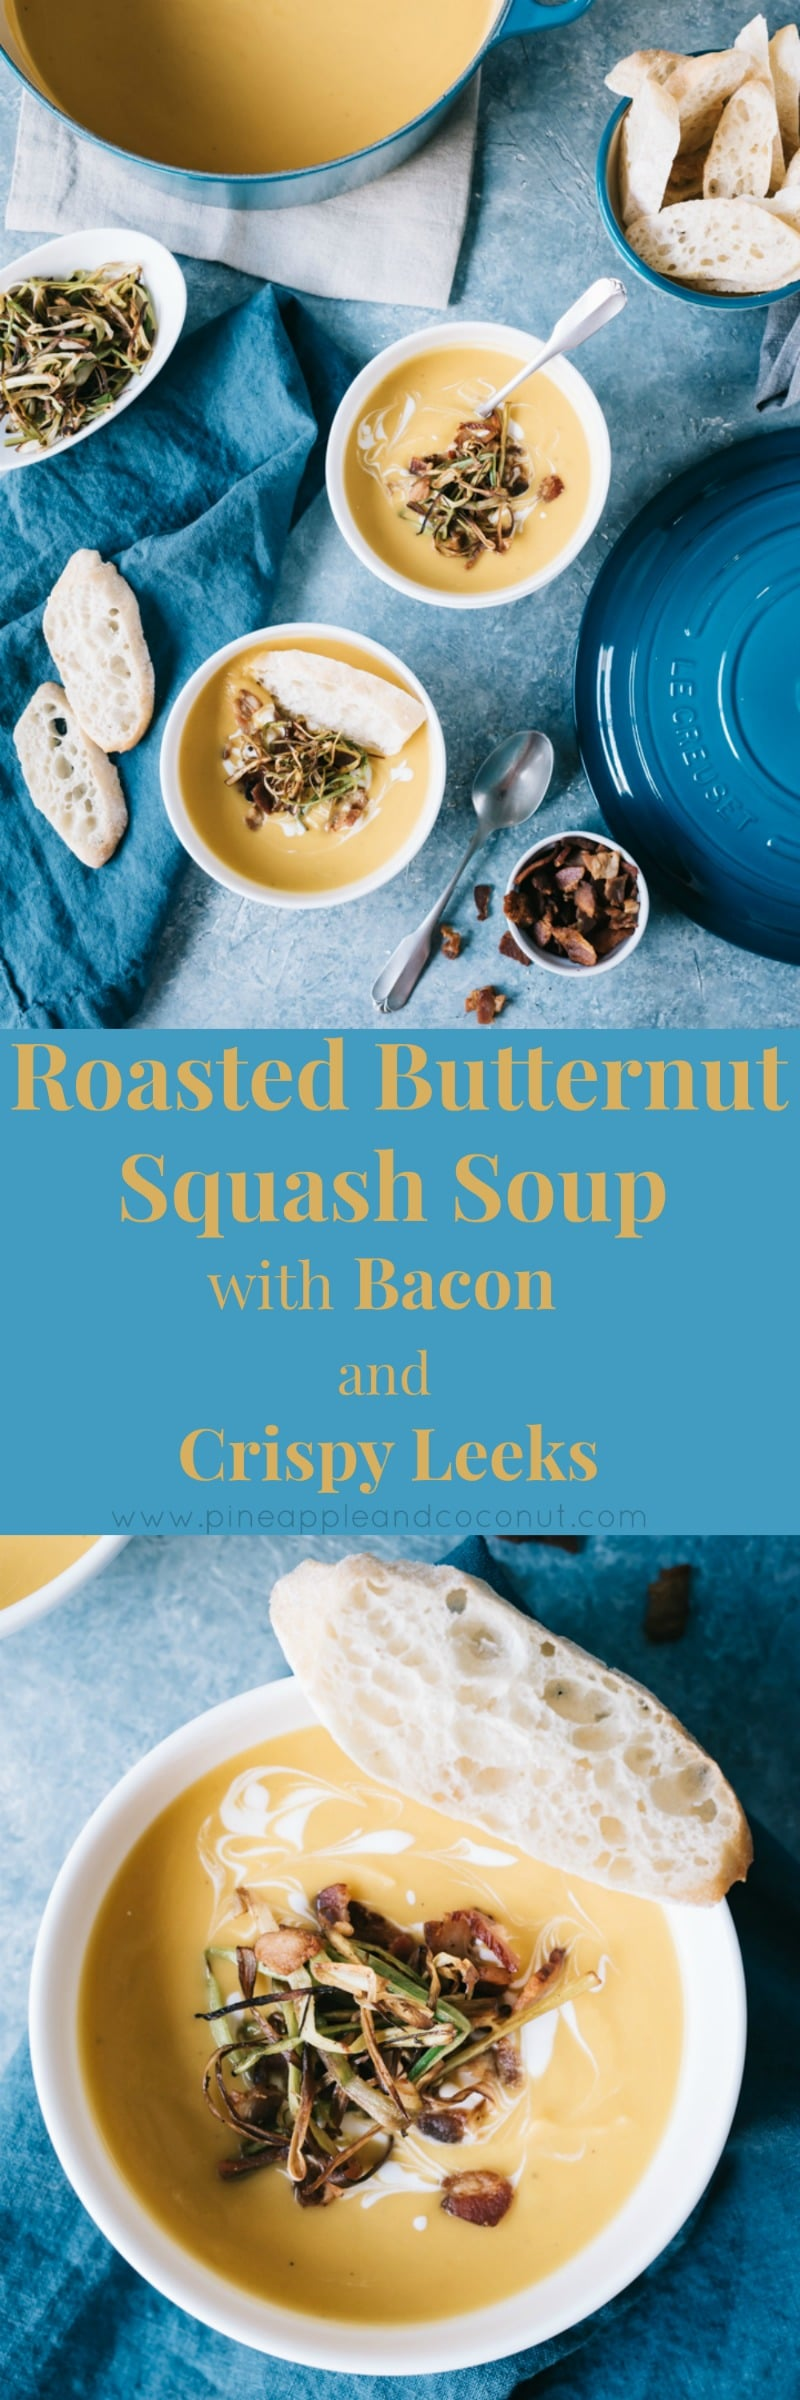 Roasted Butternut Squash Soup with Bacon and Crispy Leeks www.pineappleandcoconut.com